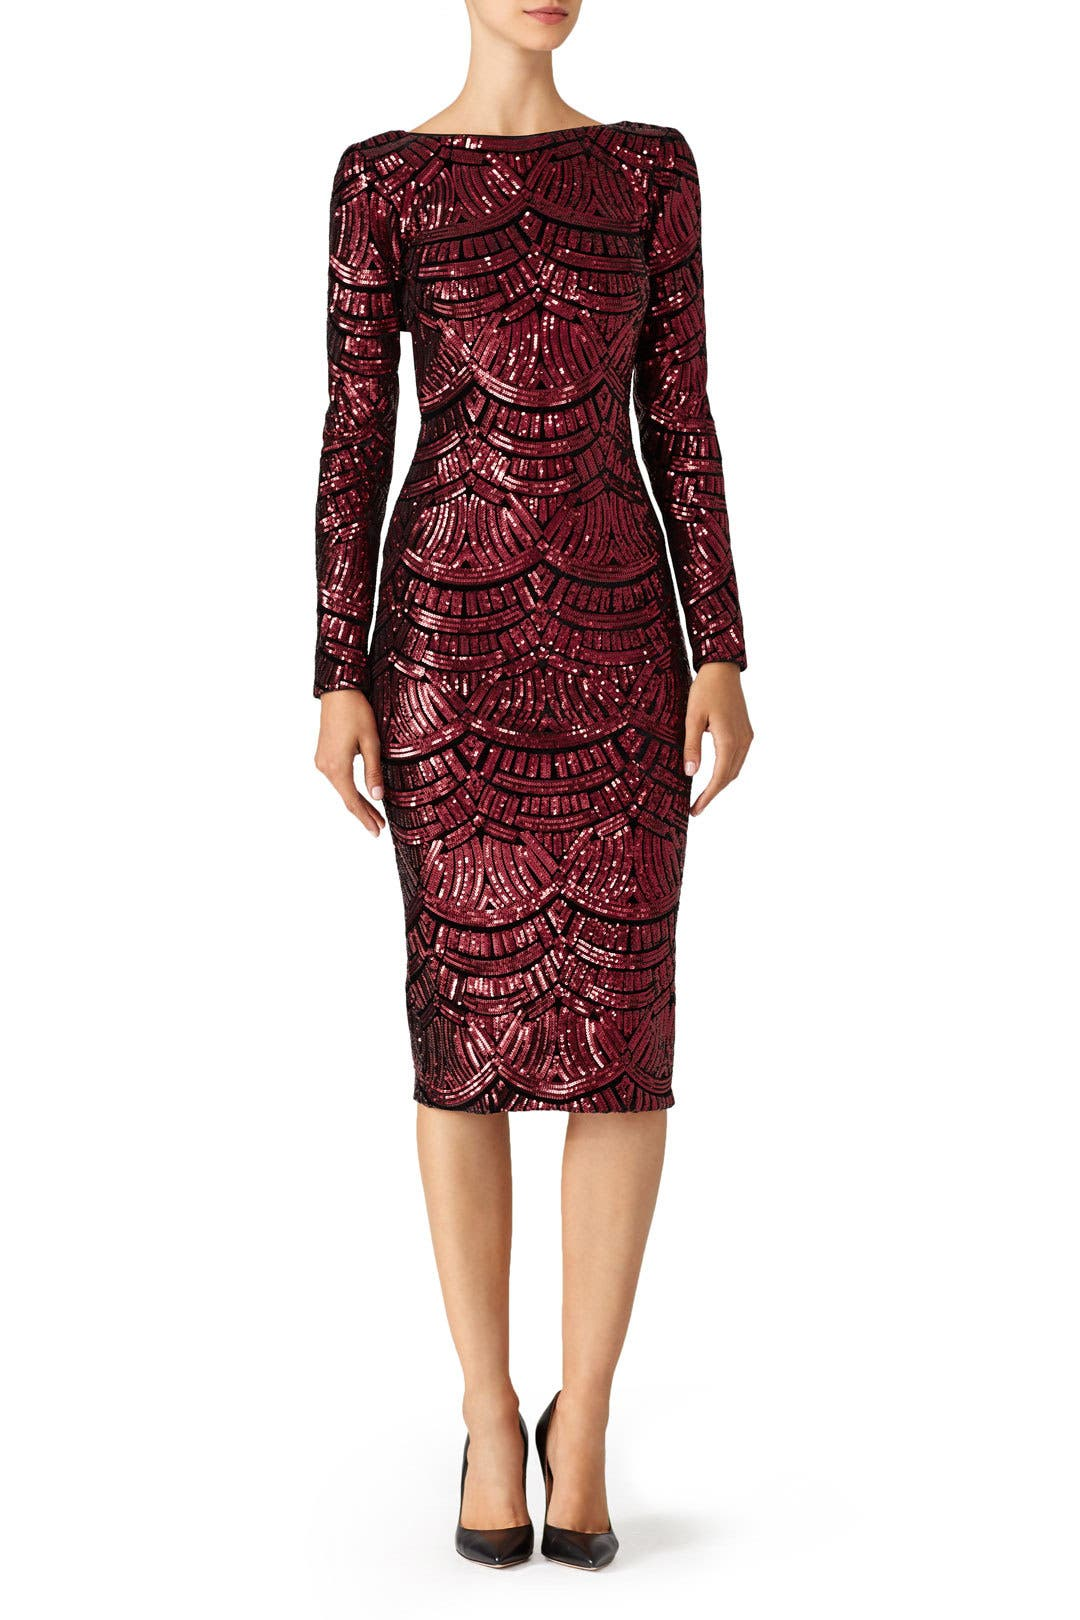 Burgundy Emery Dress By Dress The Population For 30 40